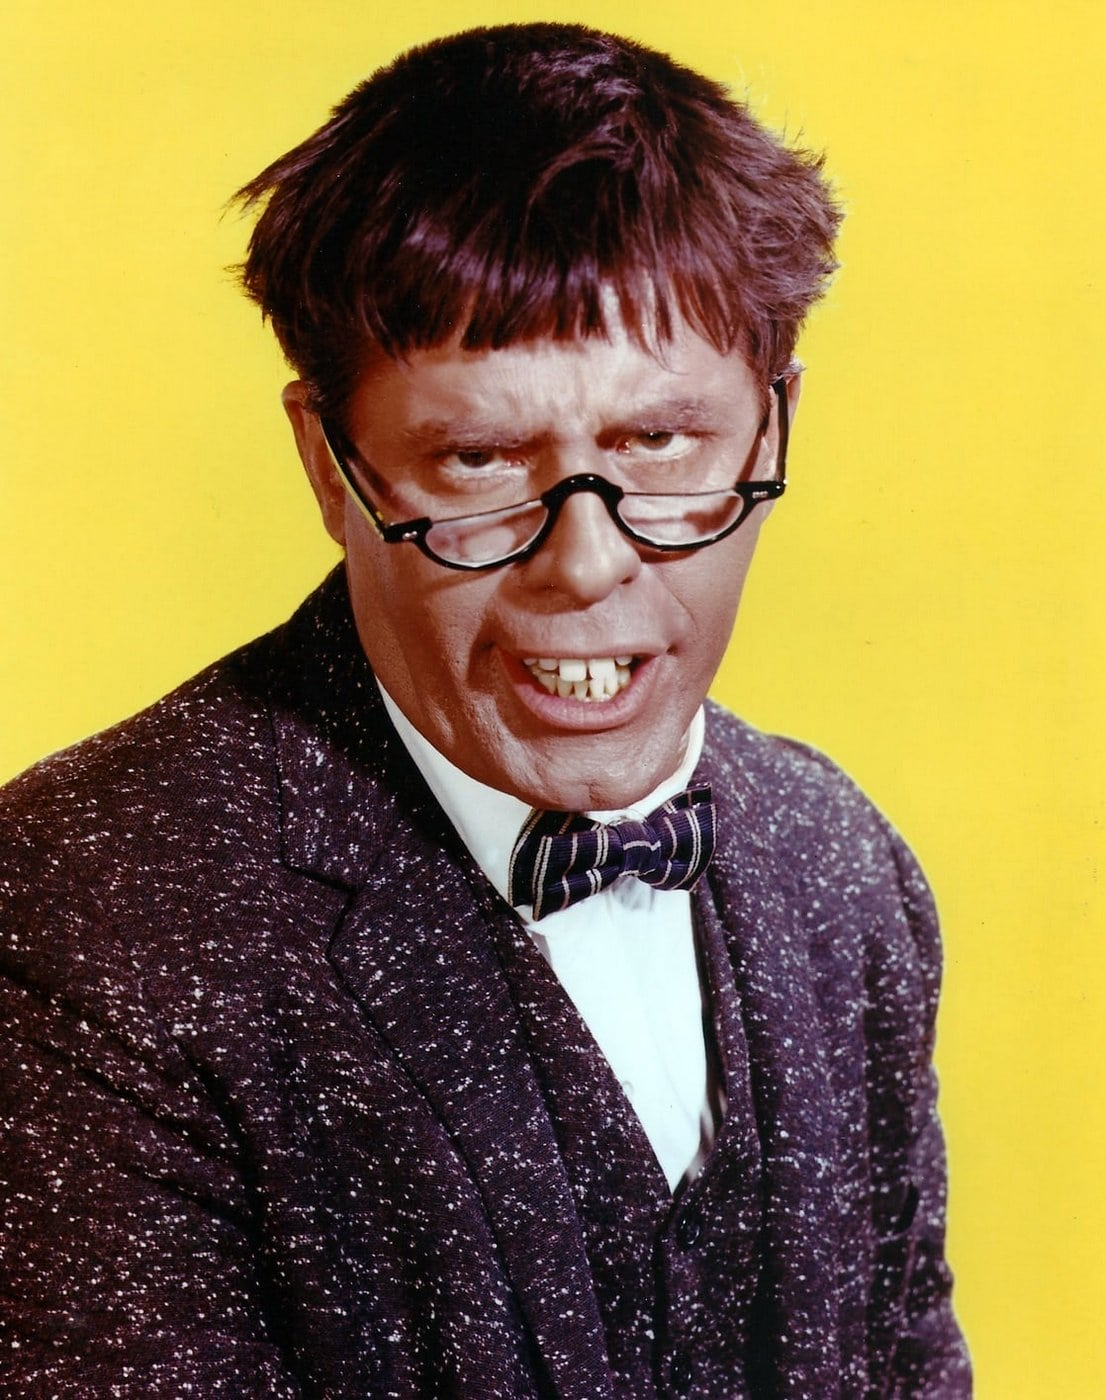 Jerry Lewis in The Nutty Professor movie (1963)